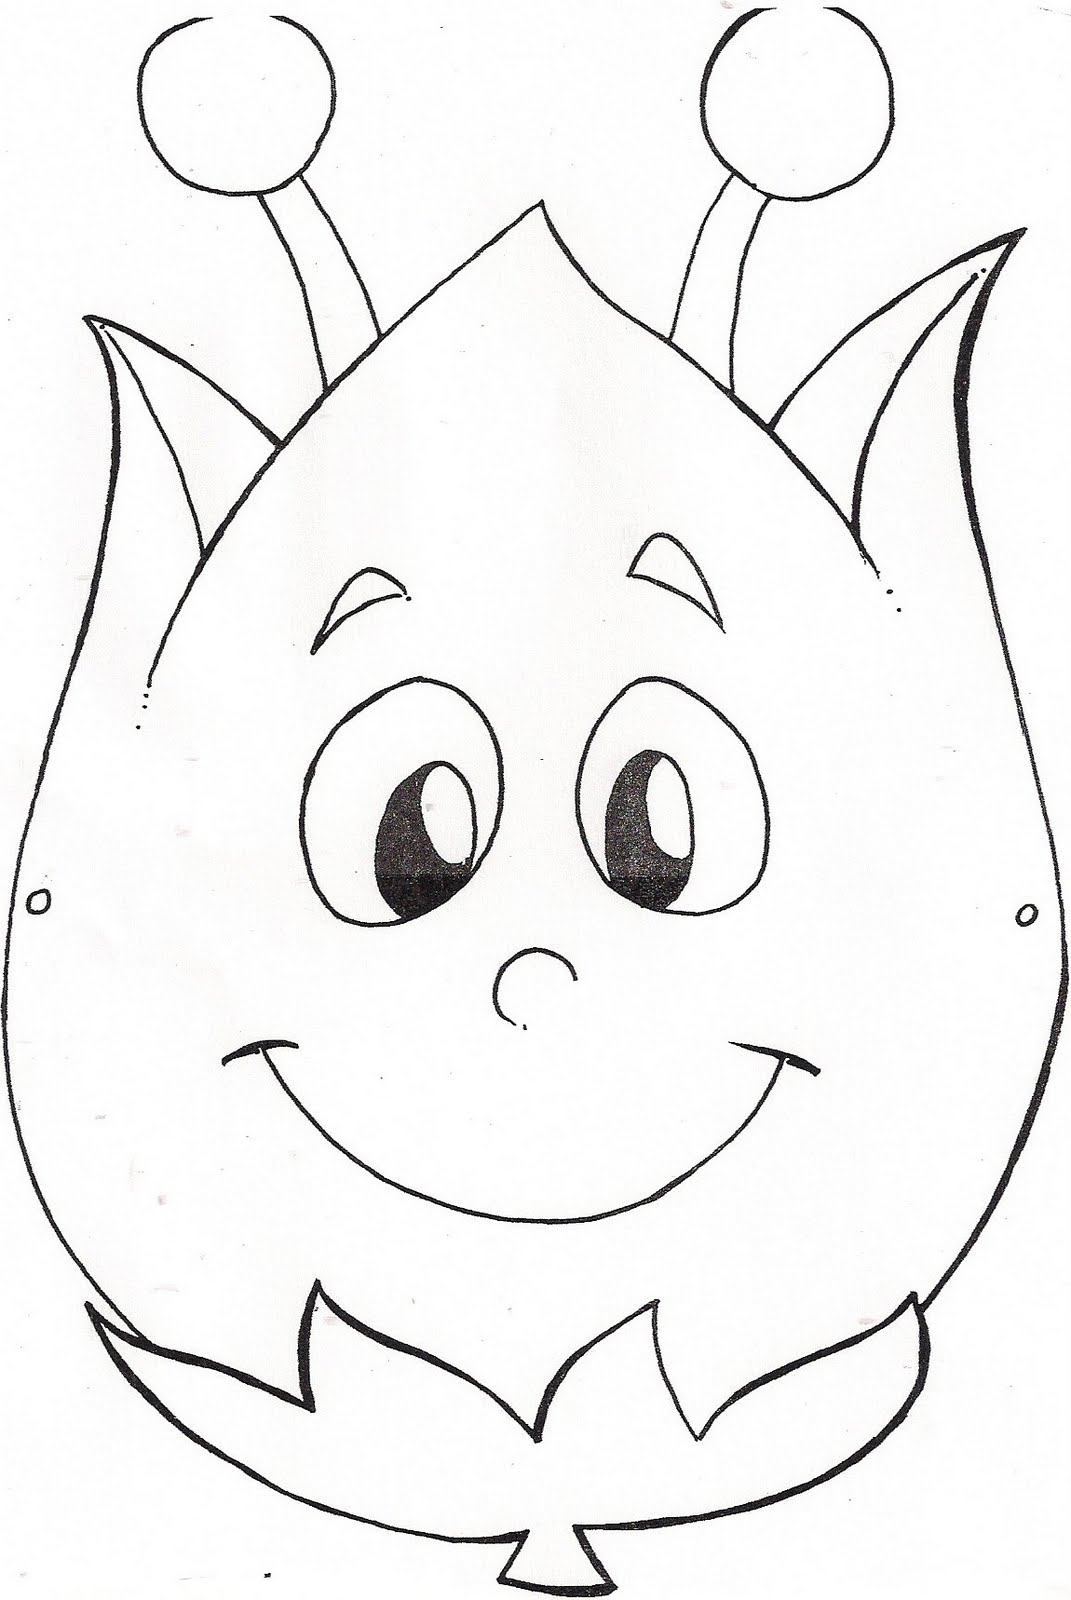 ca missions coloring pages - photo #28